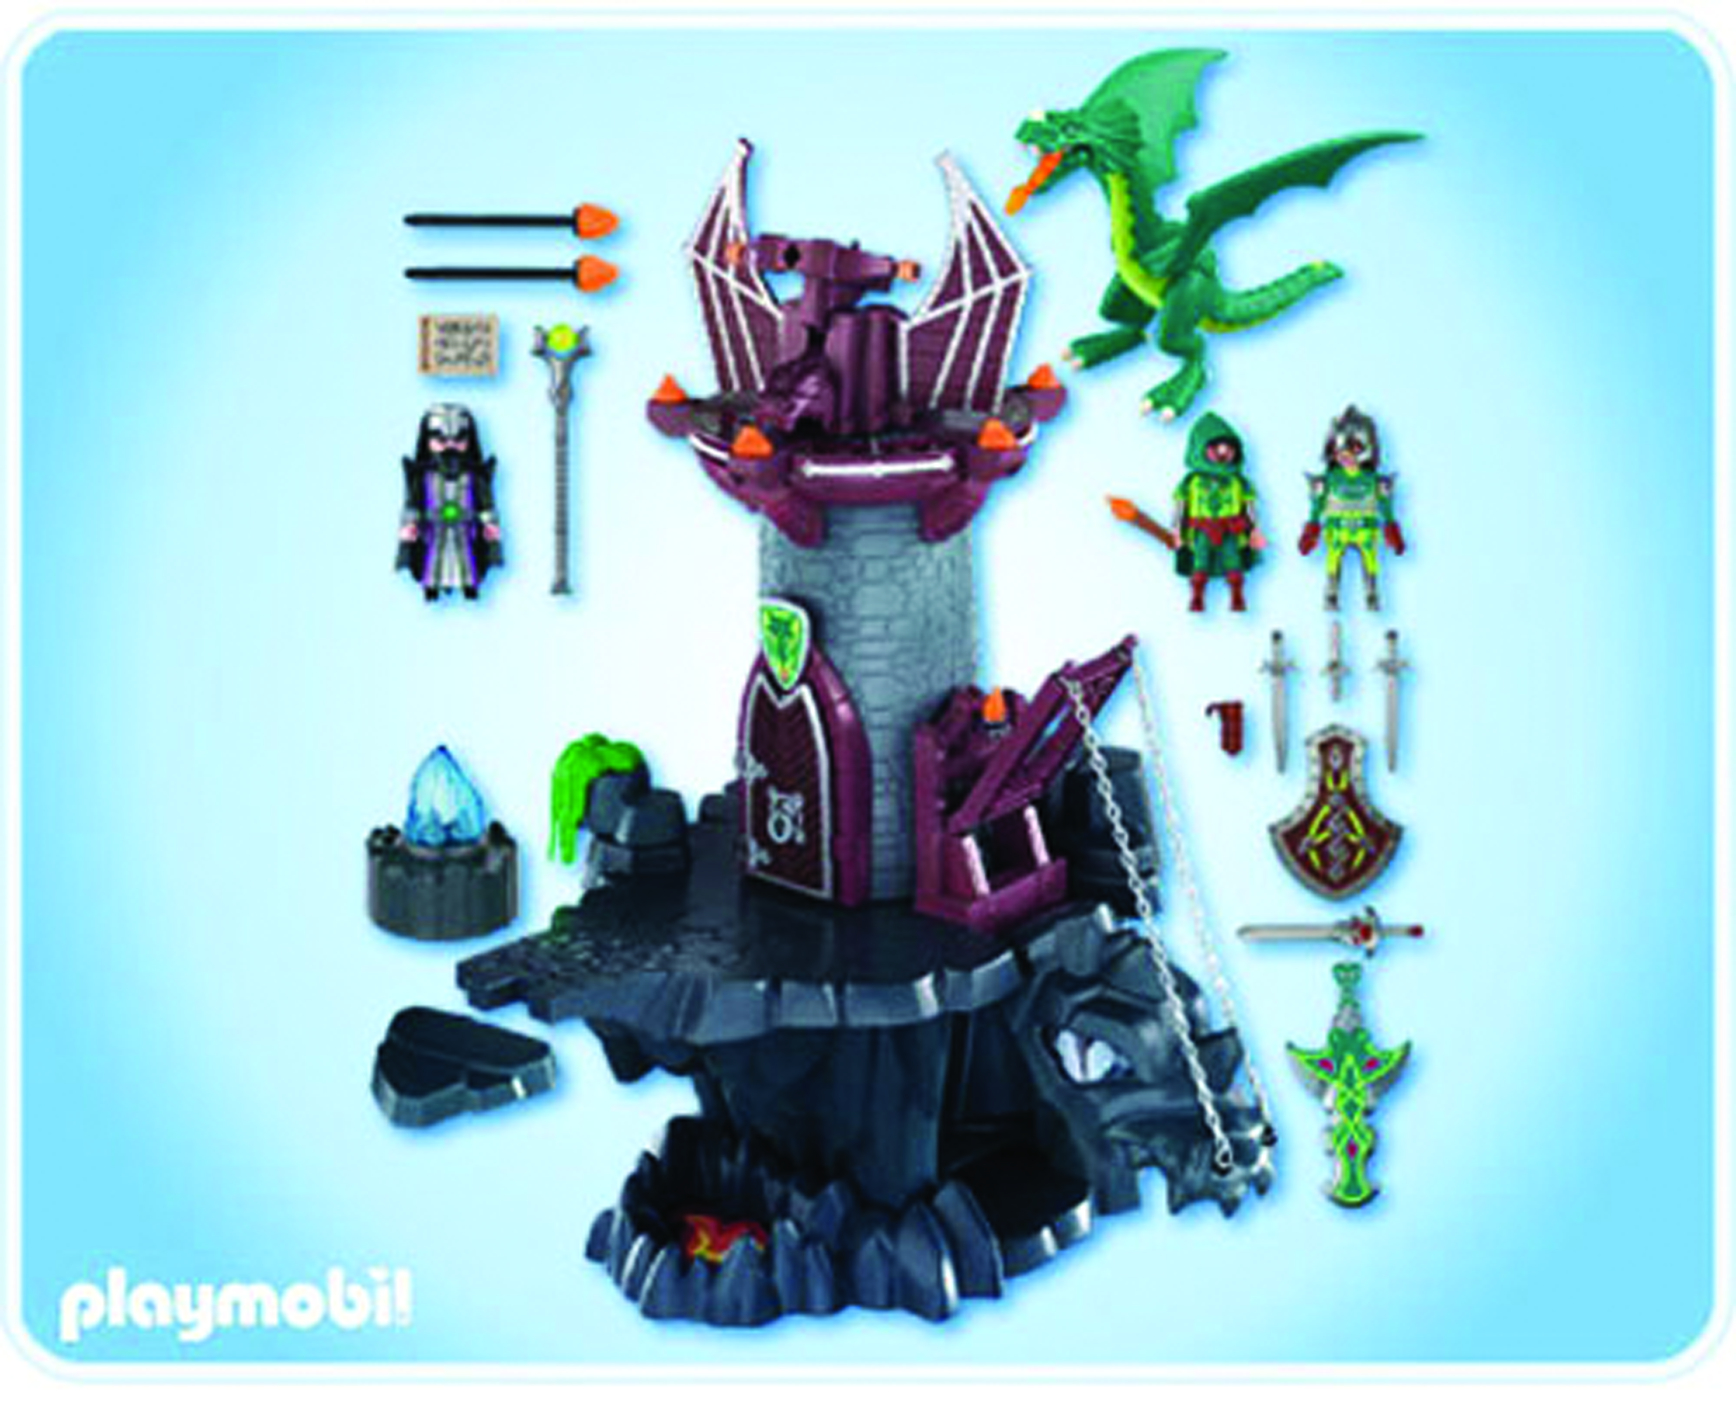 dec111716 playmobil dragons land dragons dungeon. Black Bedroom Furniture Sets. Home Design Ideas